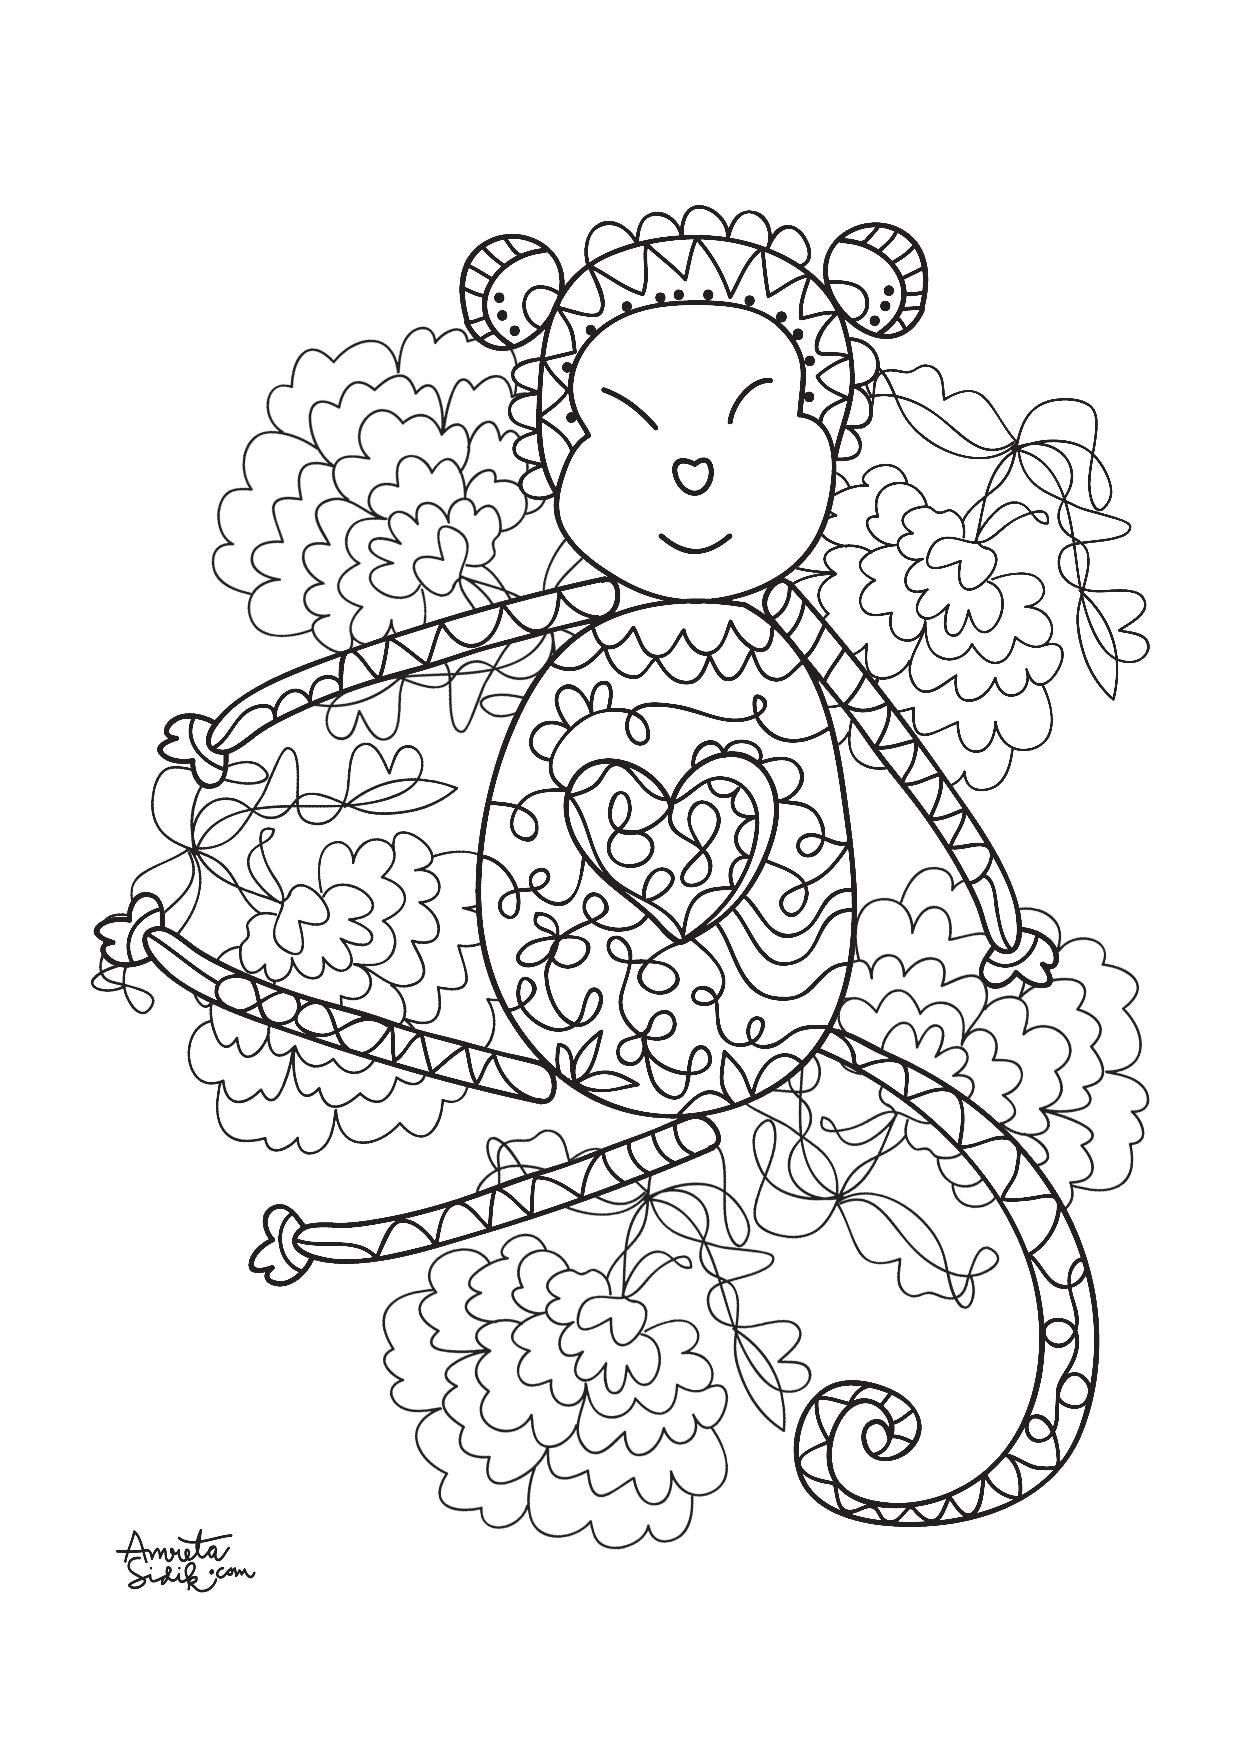 Year Of The Monkey 4 Zen And Anti Stress Coloring Pages For